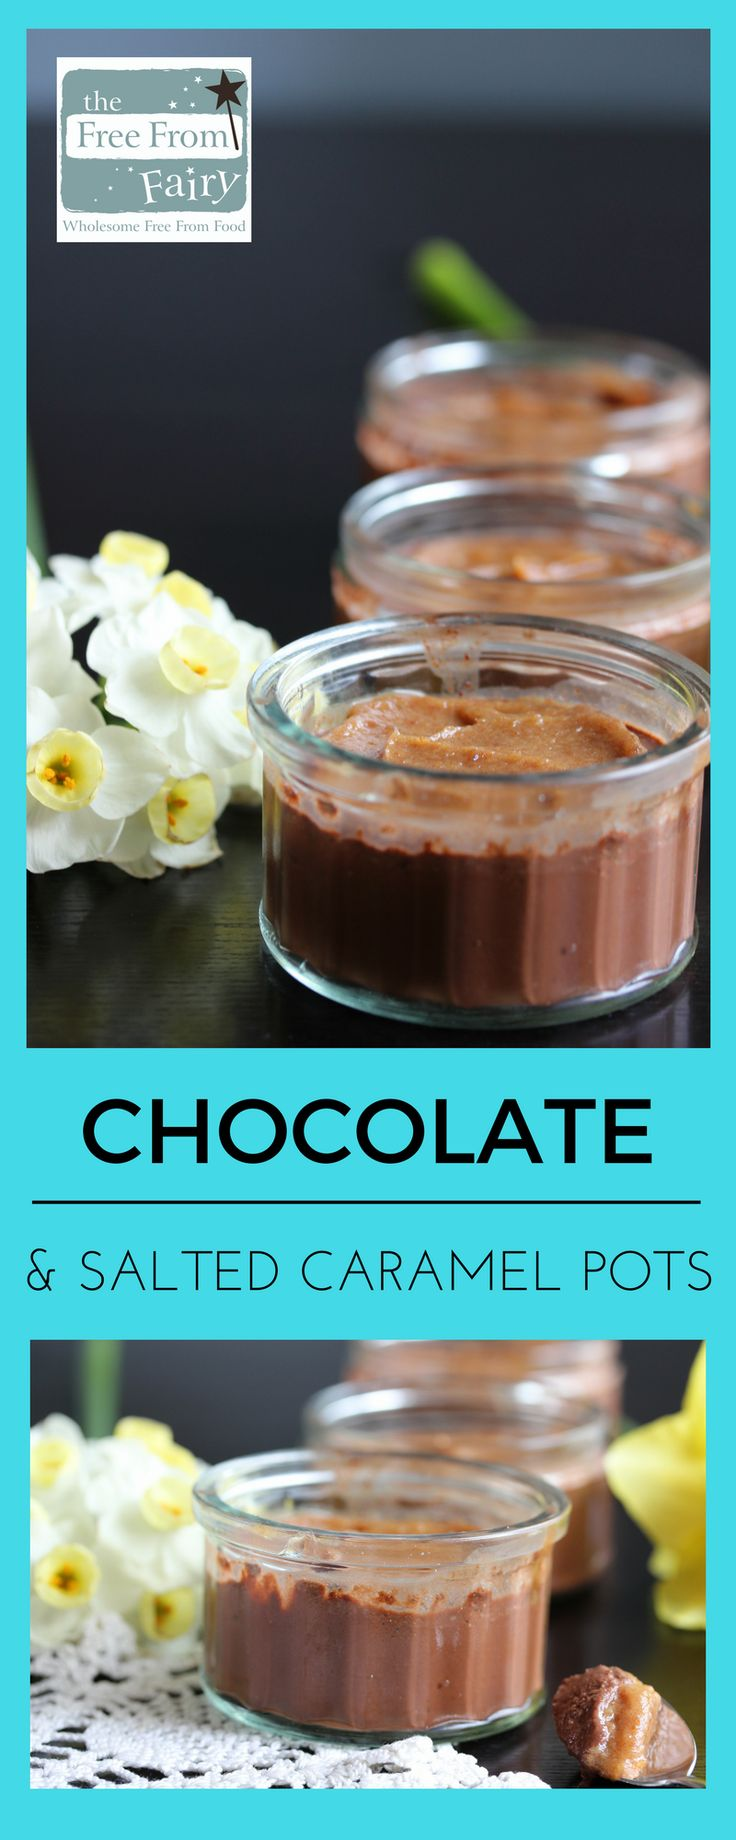 Simple chocolate and salted caramel pots perfect for Mothers Day. These are gluten-free, dairy-free, egg-free, nut-free and low sugar.